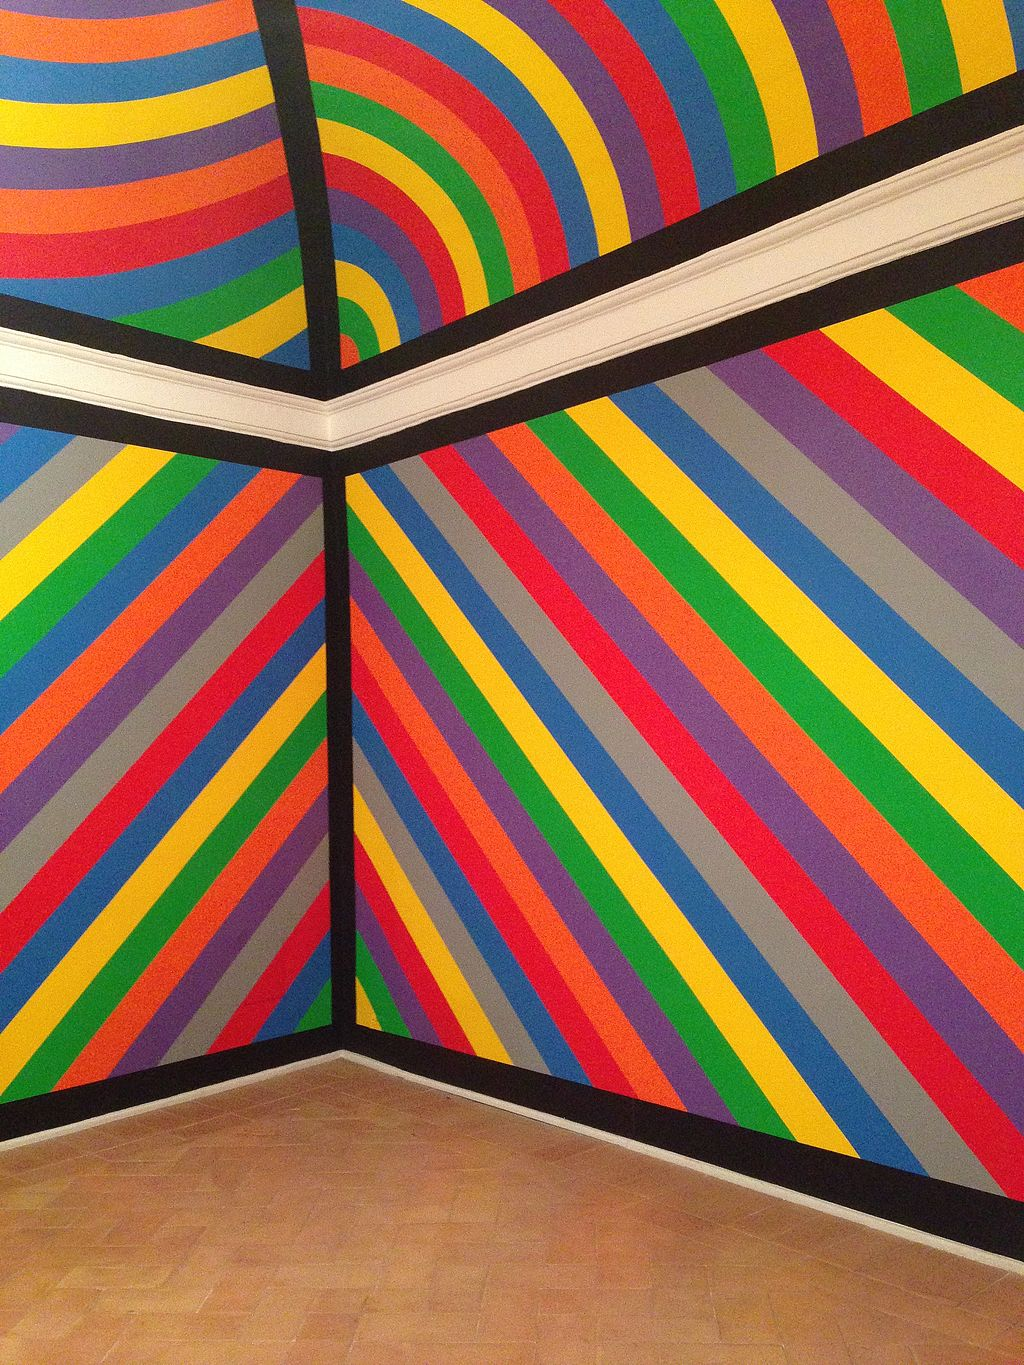 Sol LeWitt Wall drawing